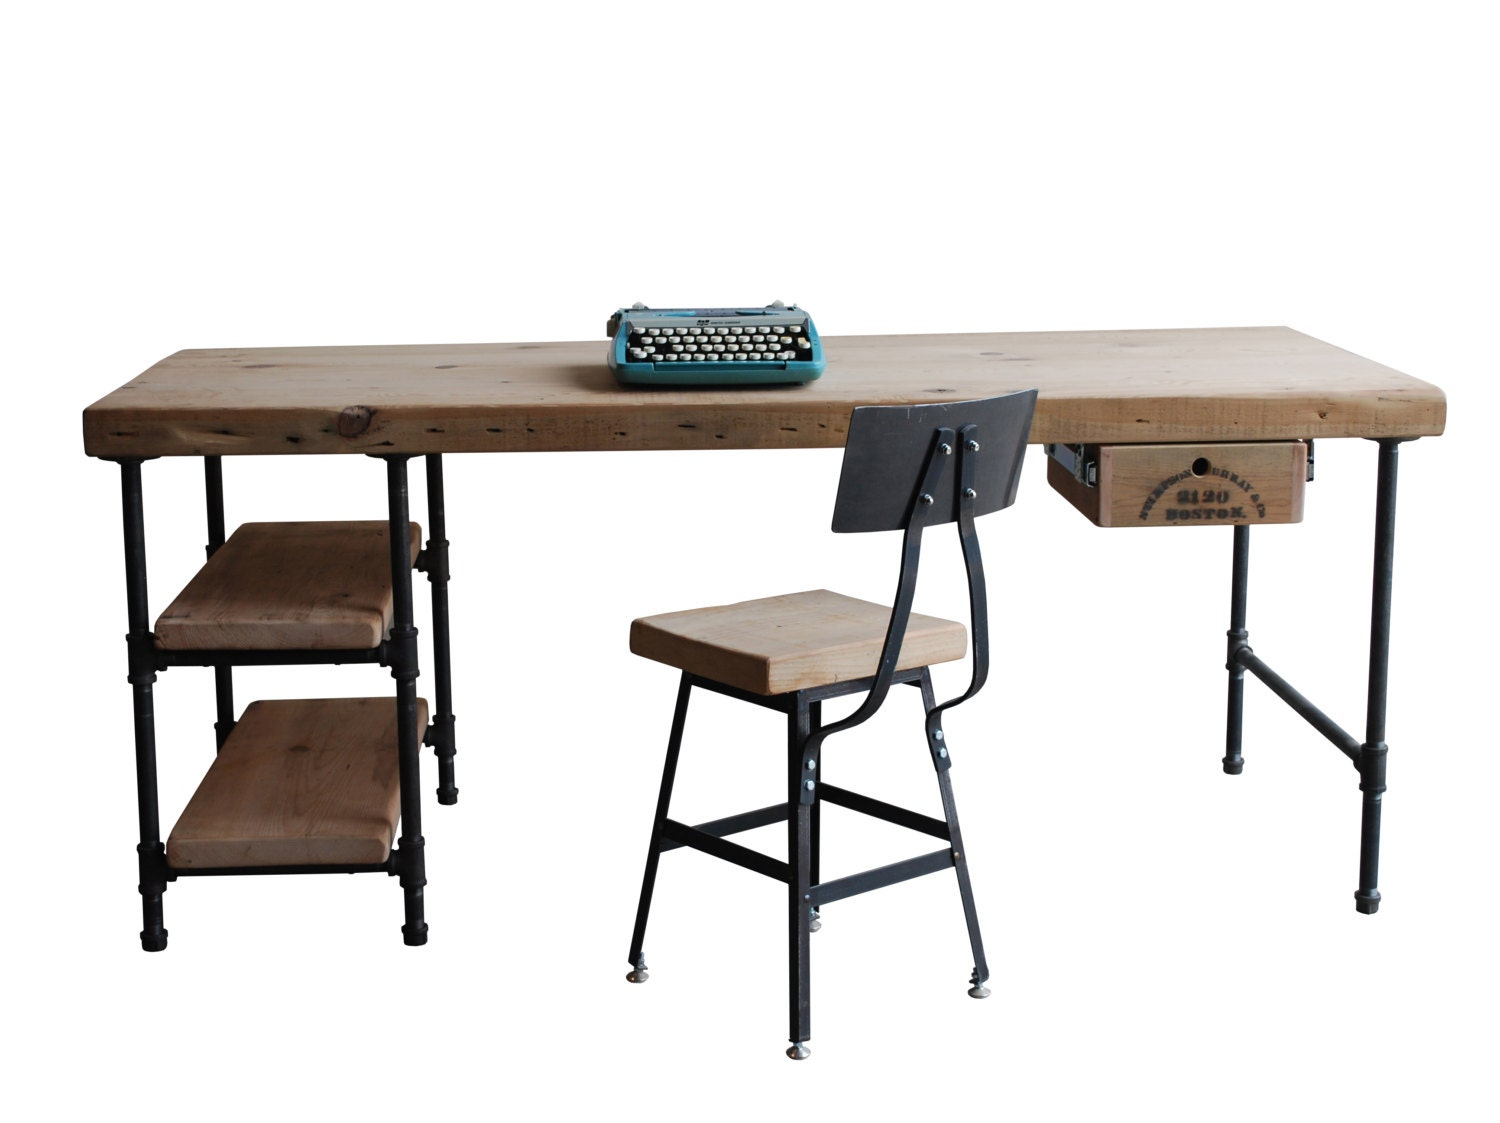 Modern wood desk reclaimed with steel legs in your